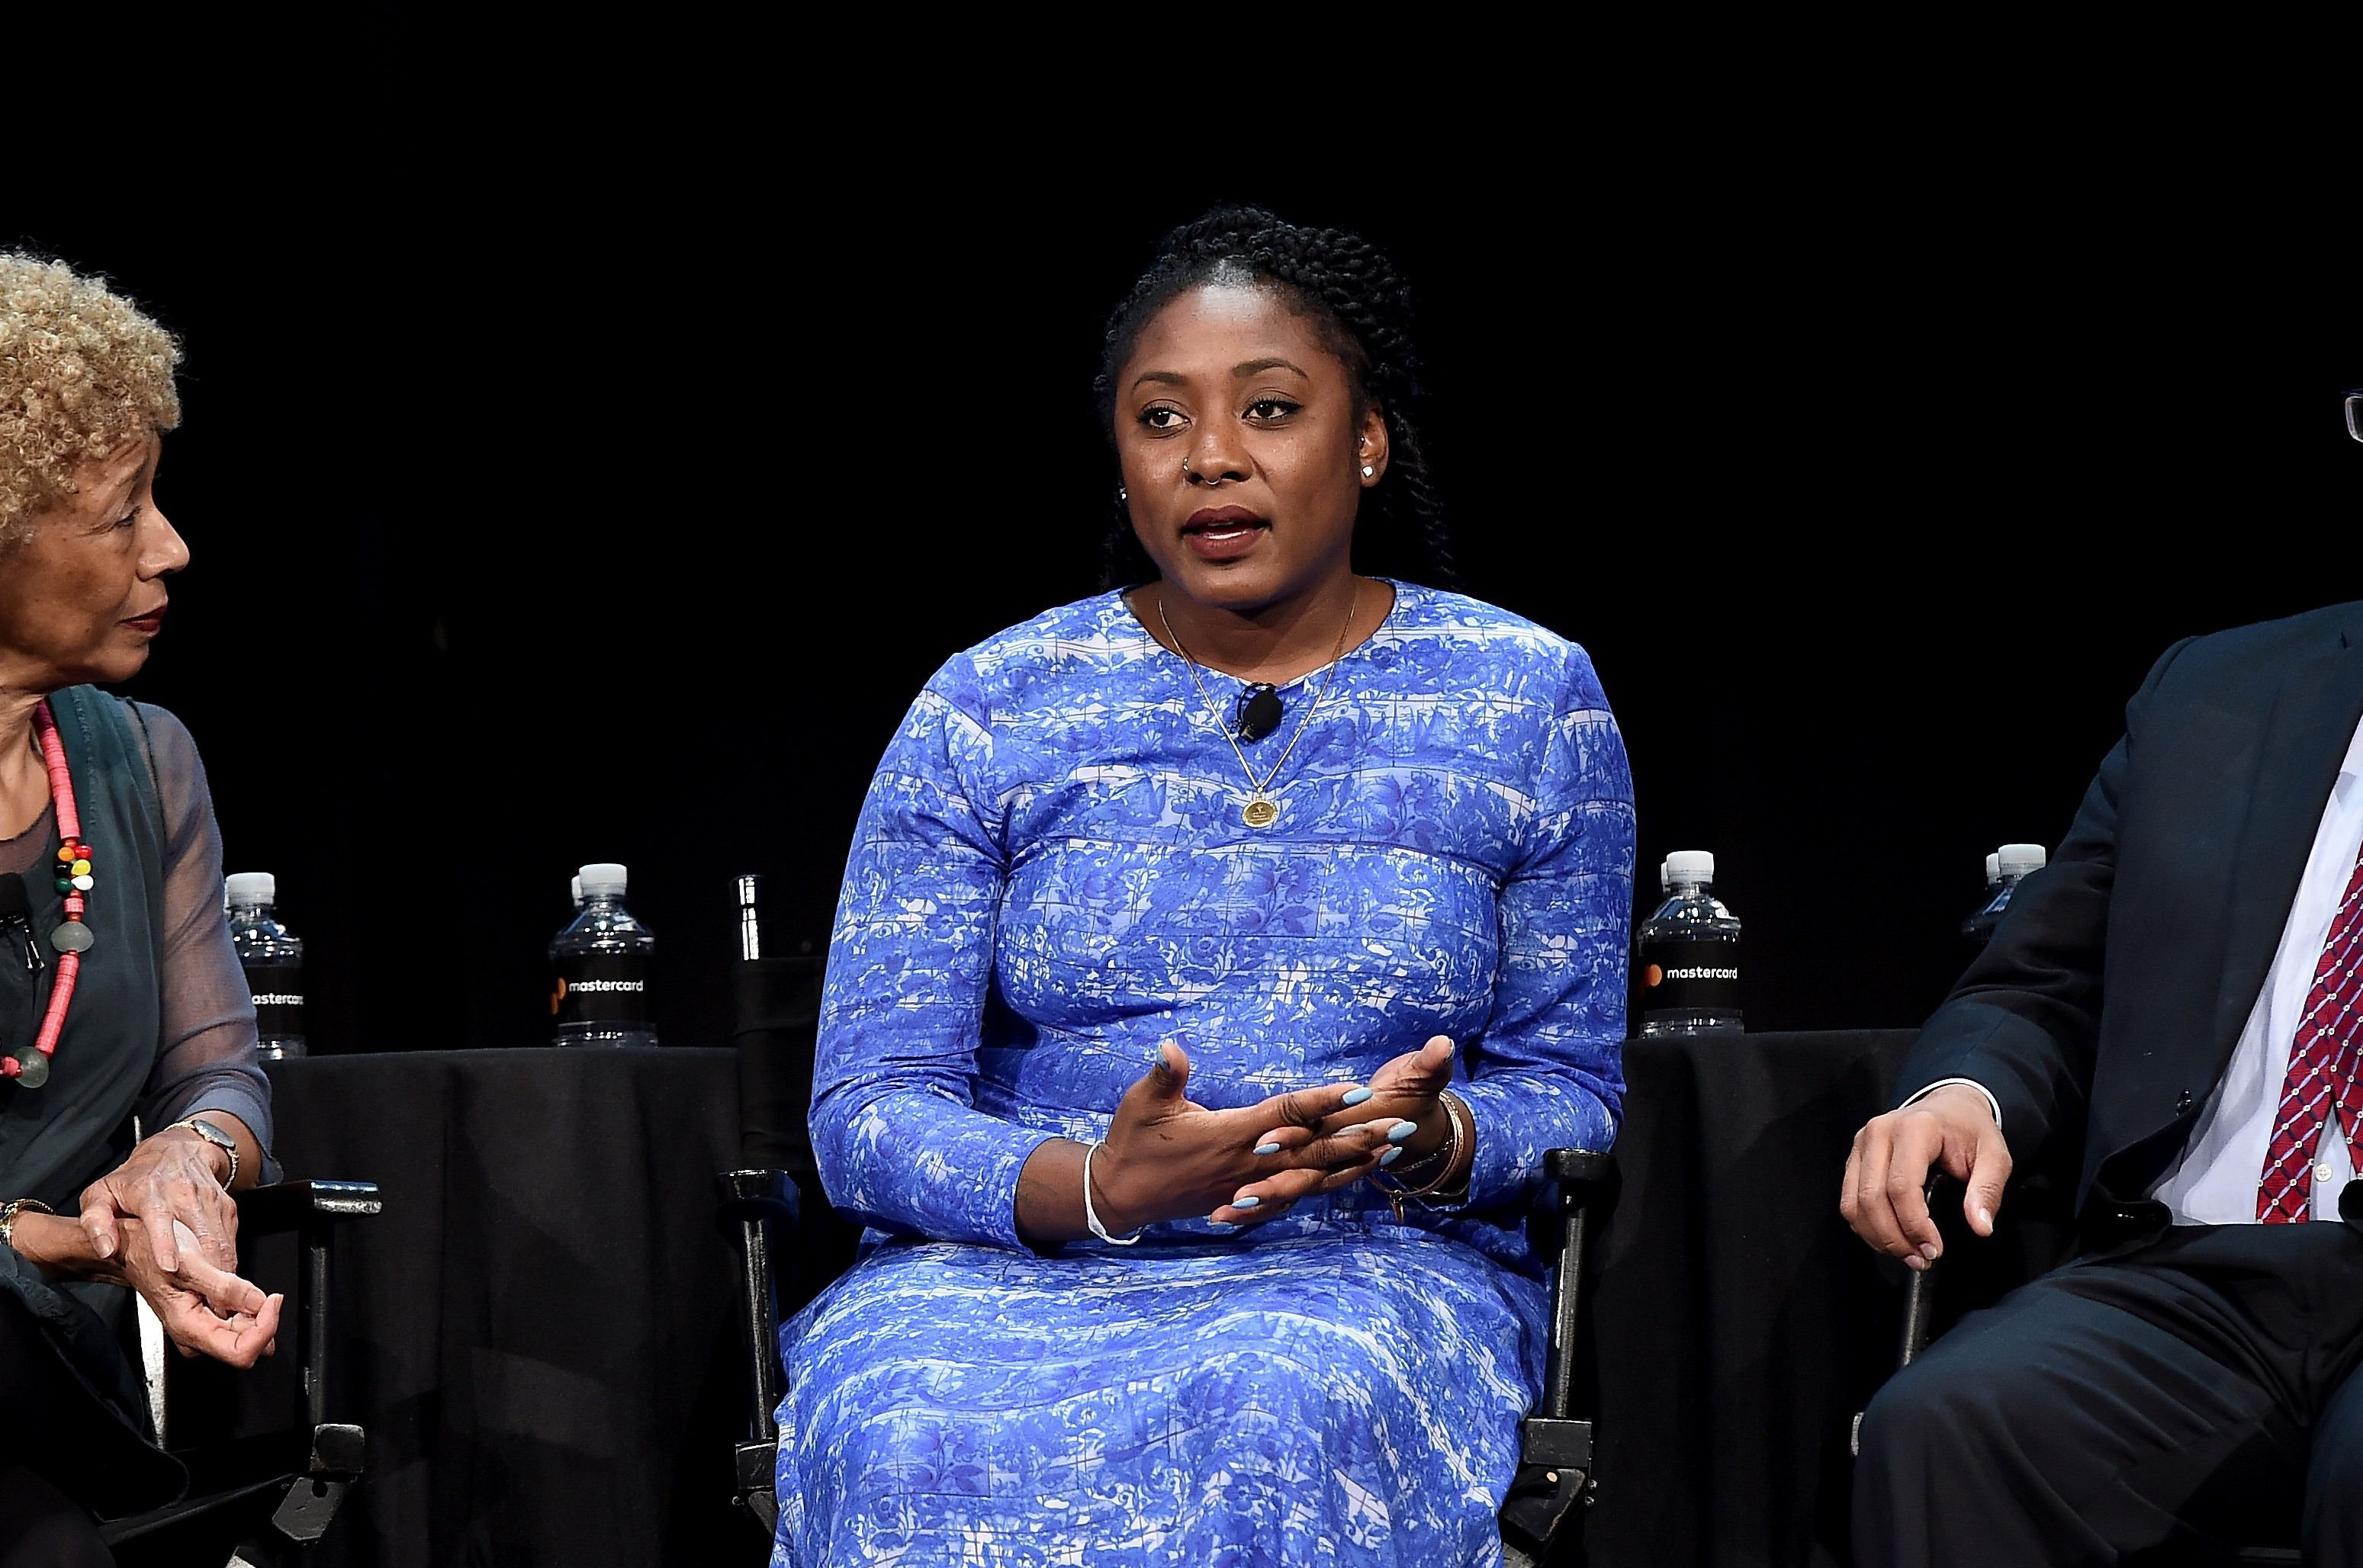 """Alicia Garza speaks during the panel discussion """"A More Perfect Union: Obama and The Racial Divide,"""" at the 2016 New Yorker Festival."""